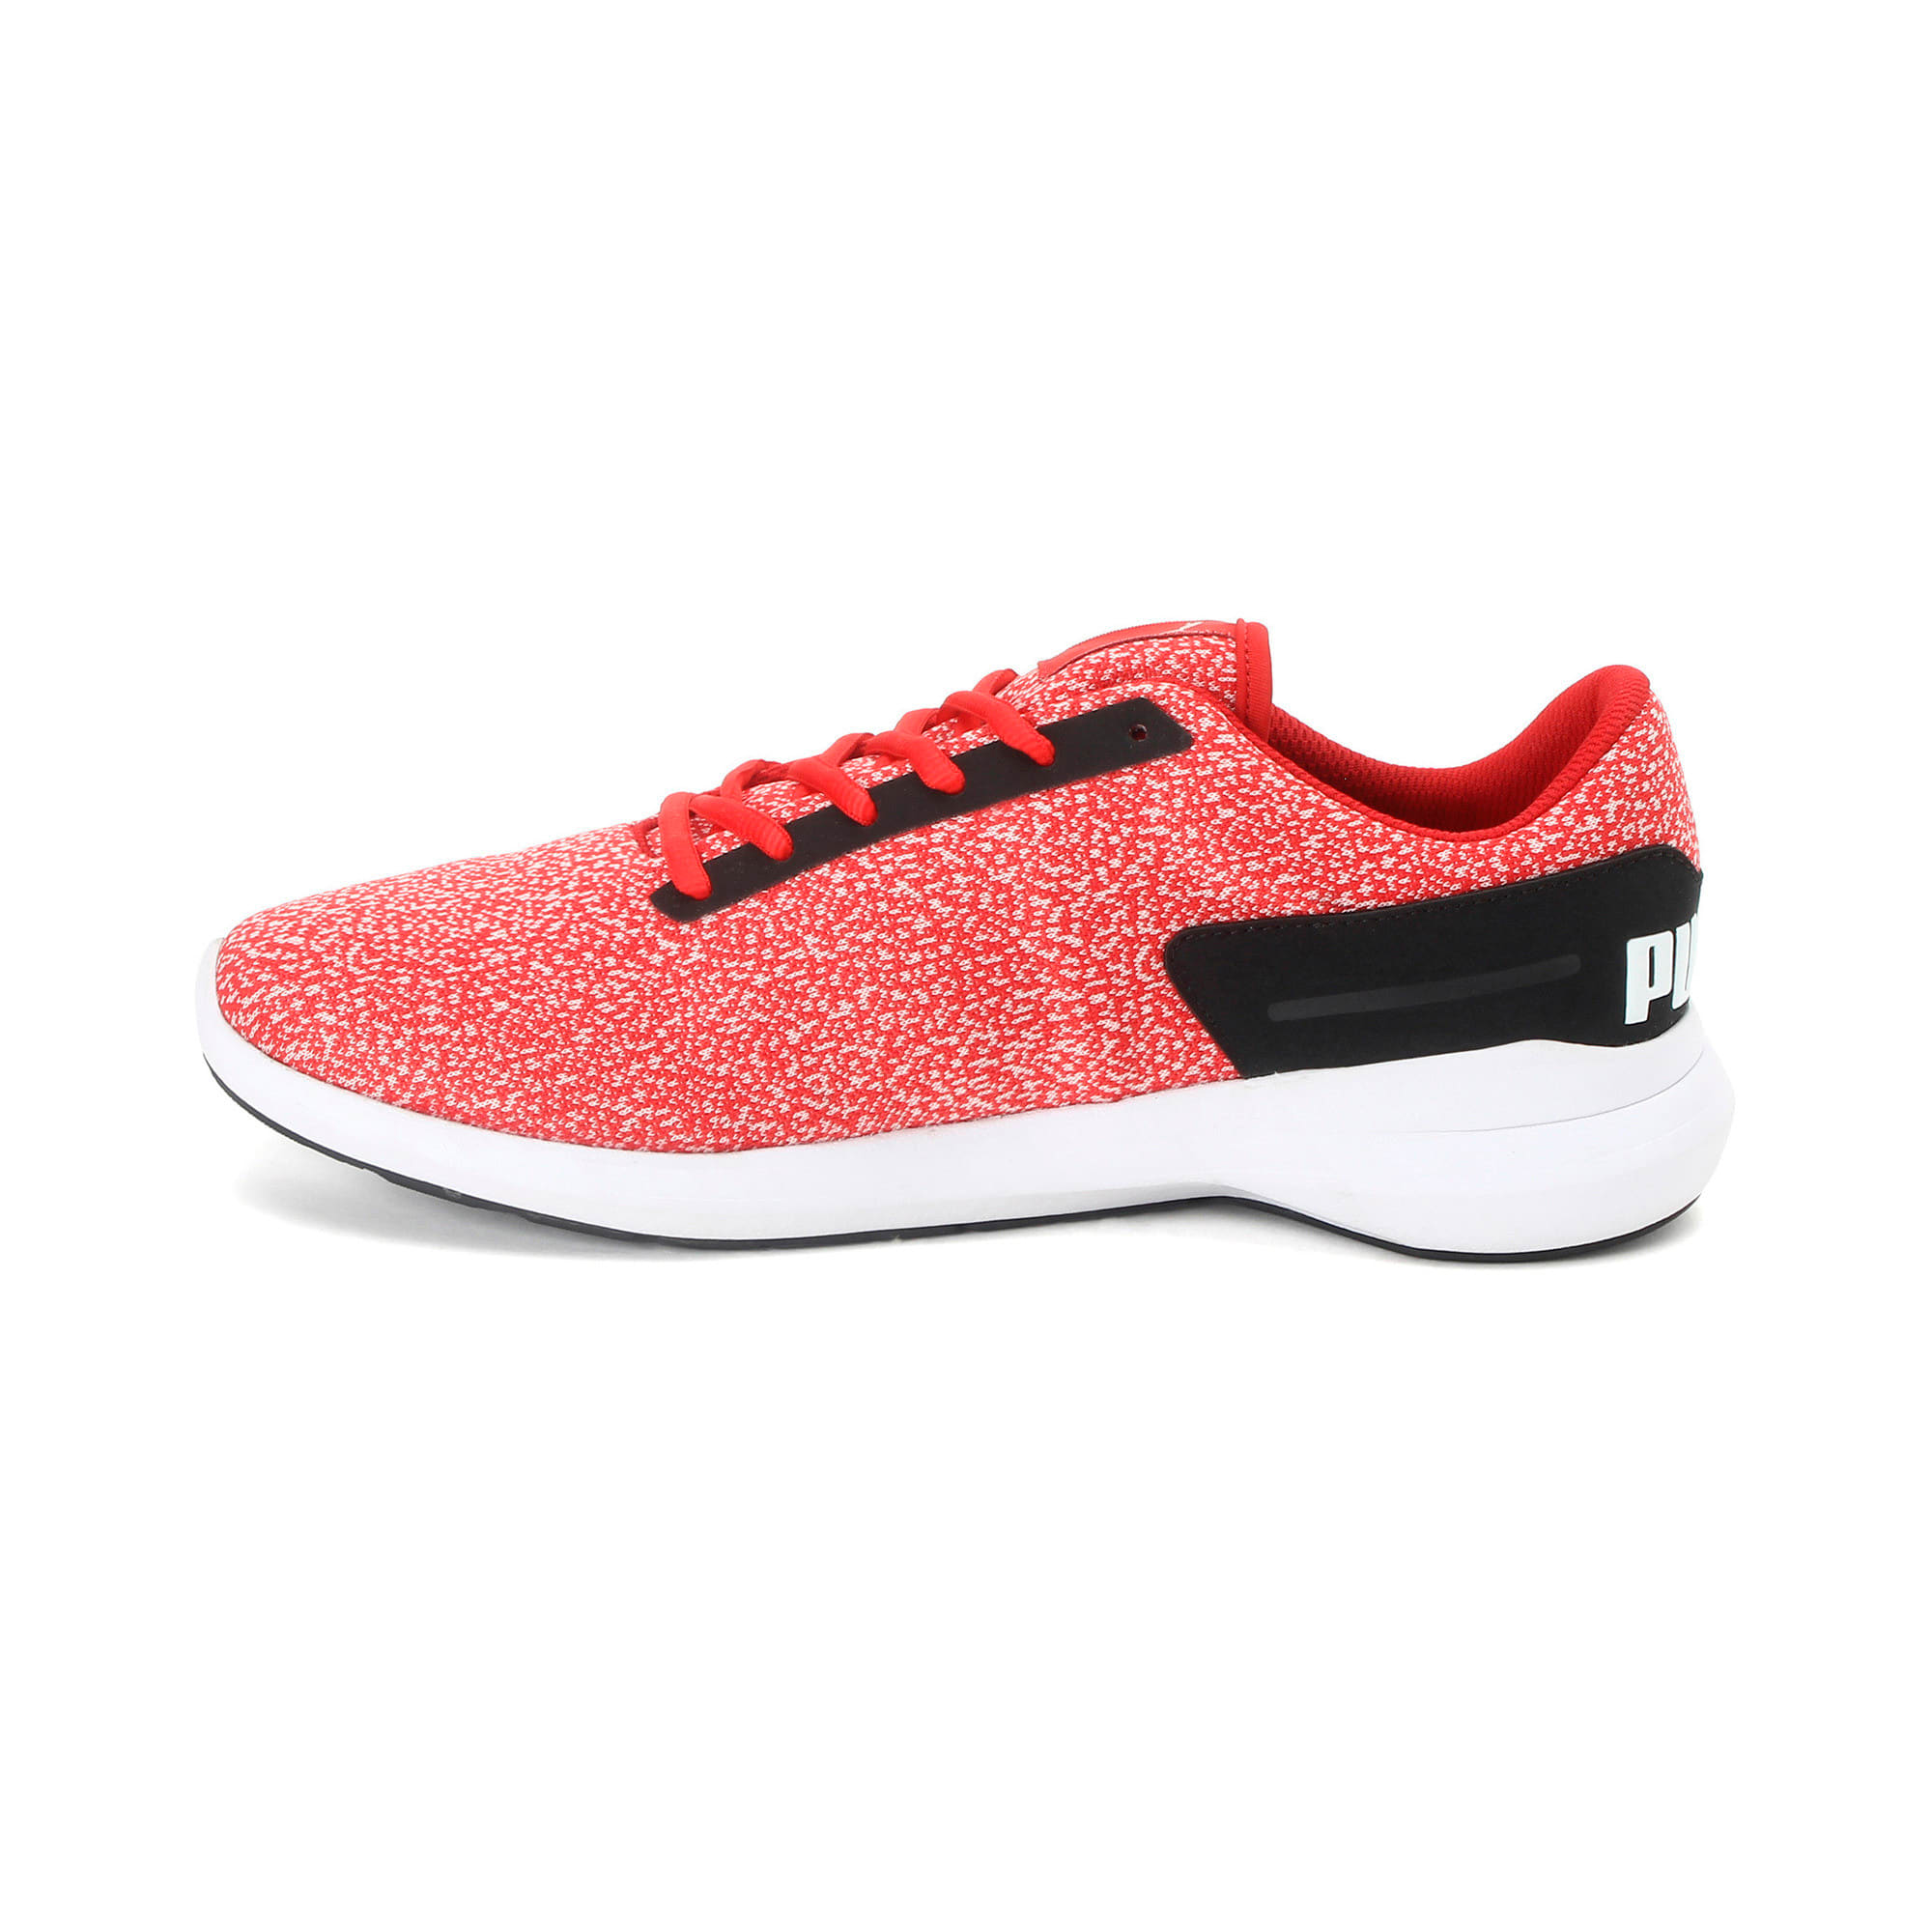 Thumbnail 1 of Pacer EL IDP Men's Sportstyle Shoes, Ribbon Red-Black- White, medium-IND